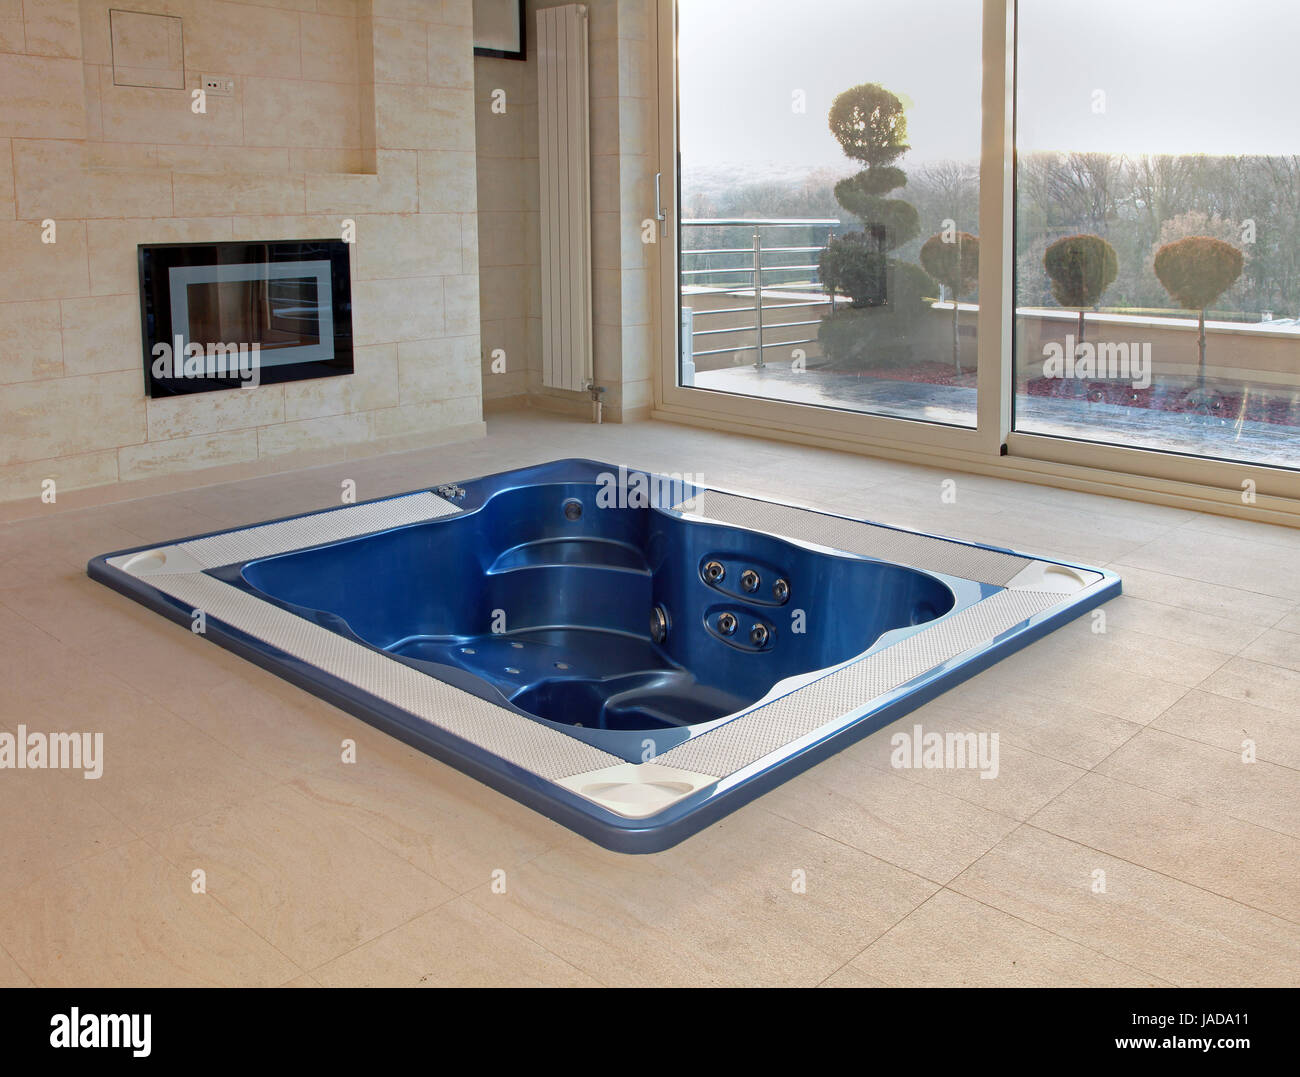 Large hot tub built in flor of room interior Stock Photo, Royalty ...